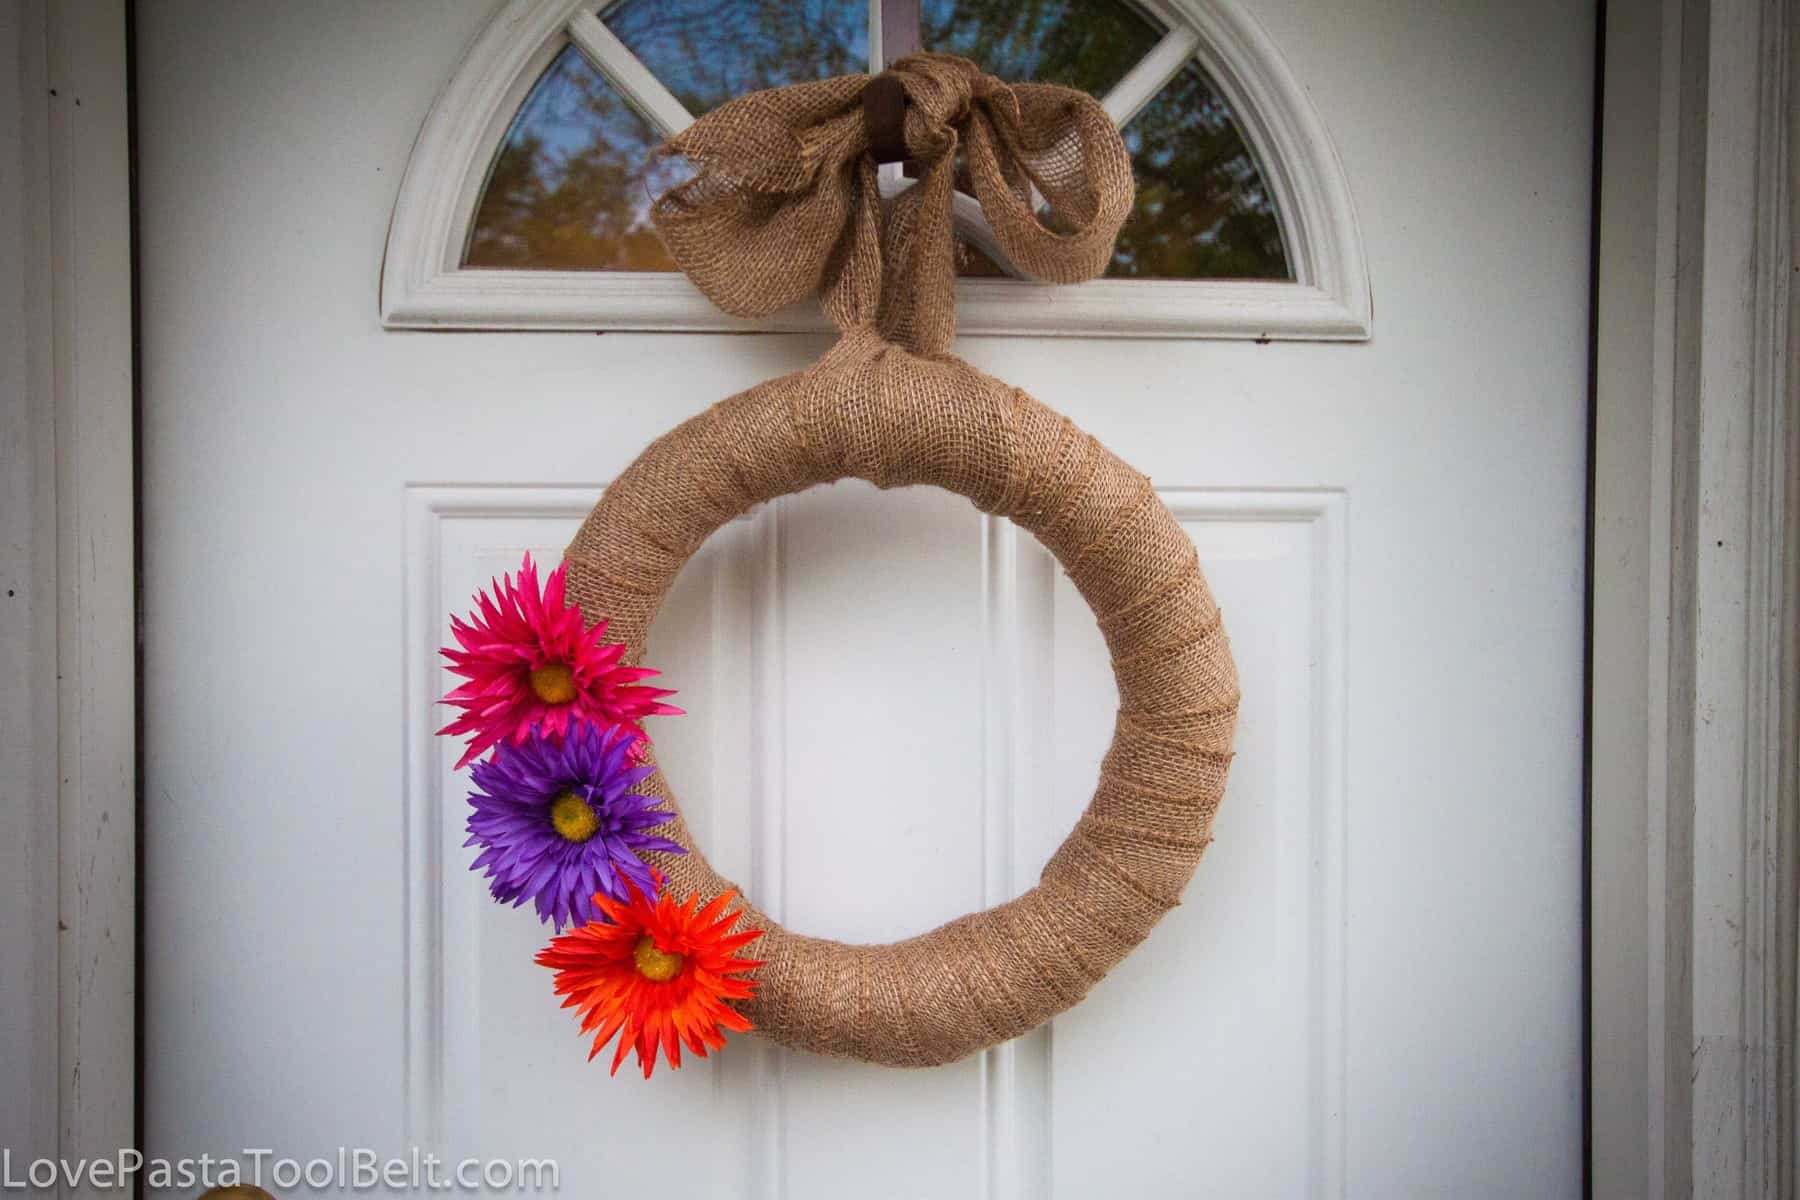 Diy burlap wreath love pasta and a tool belt for What to make with burlap